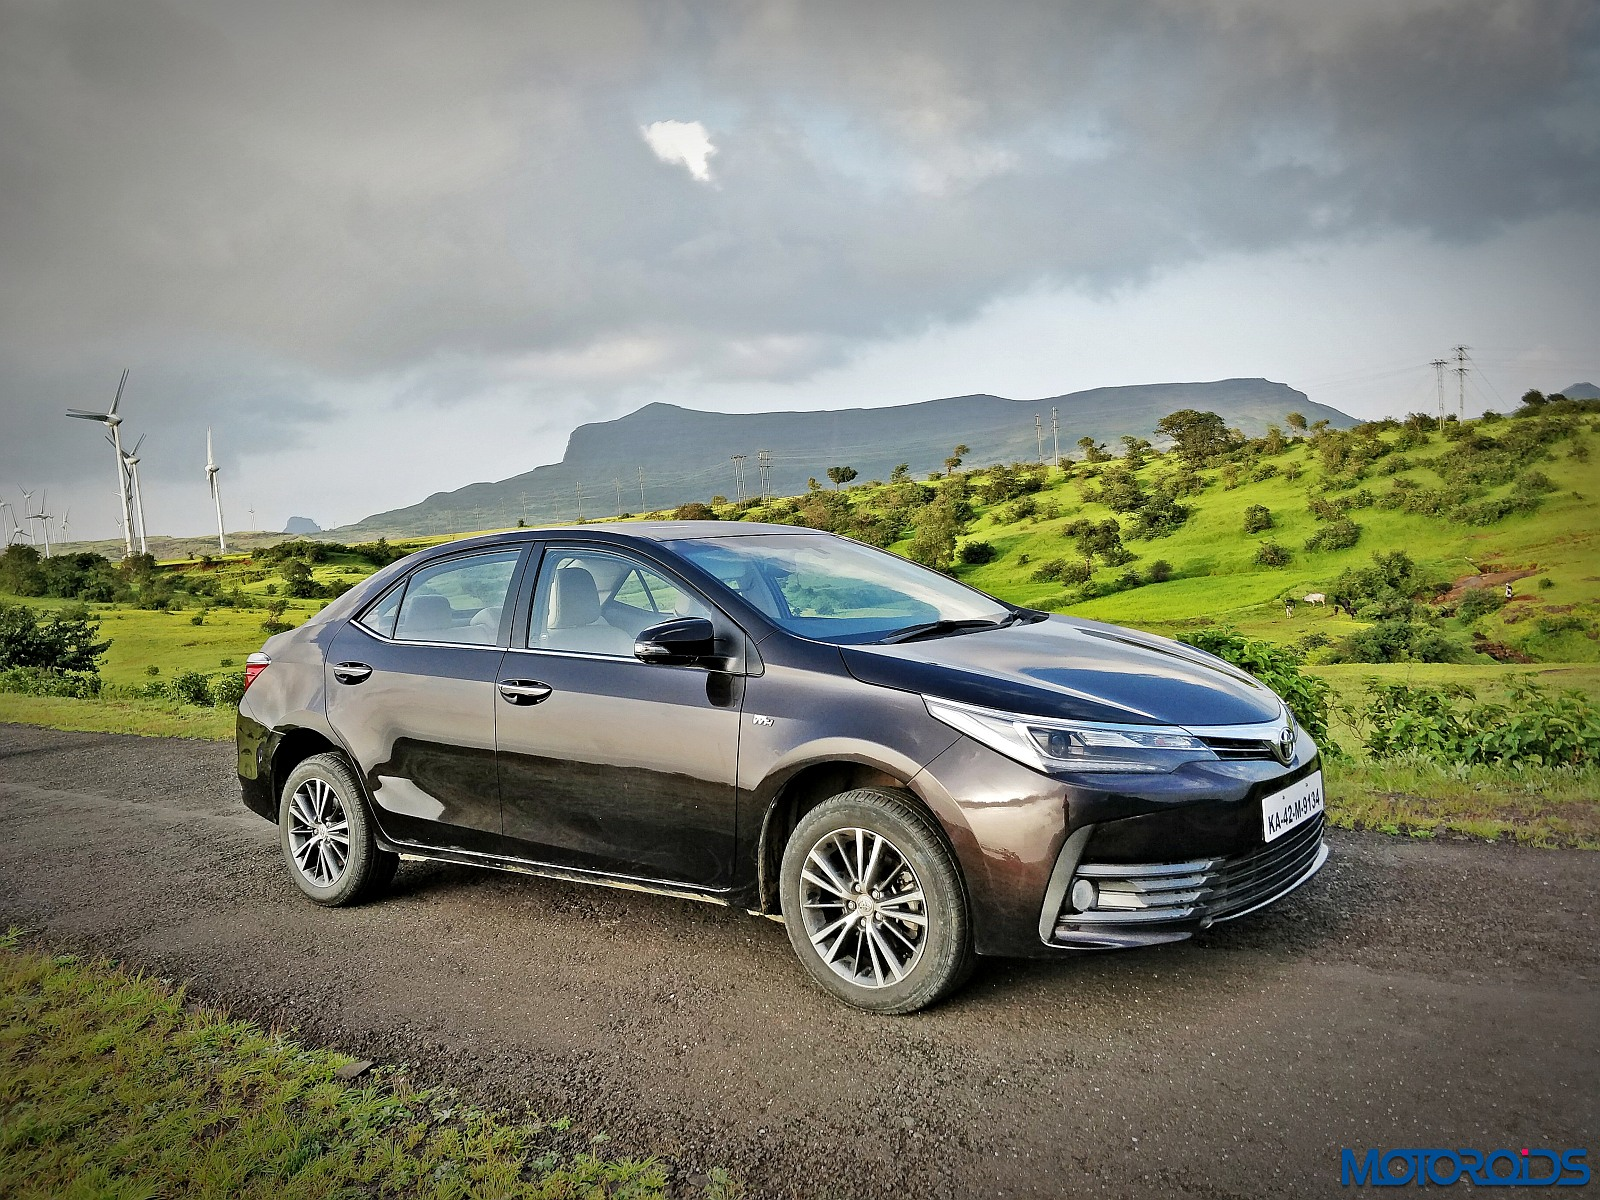 new 2017 toyota corolla altis facelift india review price images mileage specs and features. Black Bedroom Furniture Sets. Home Design Ideas